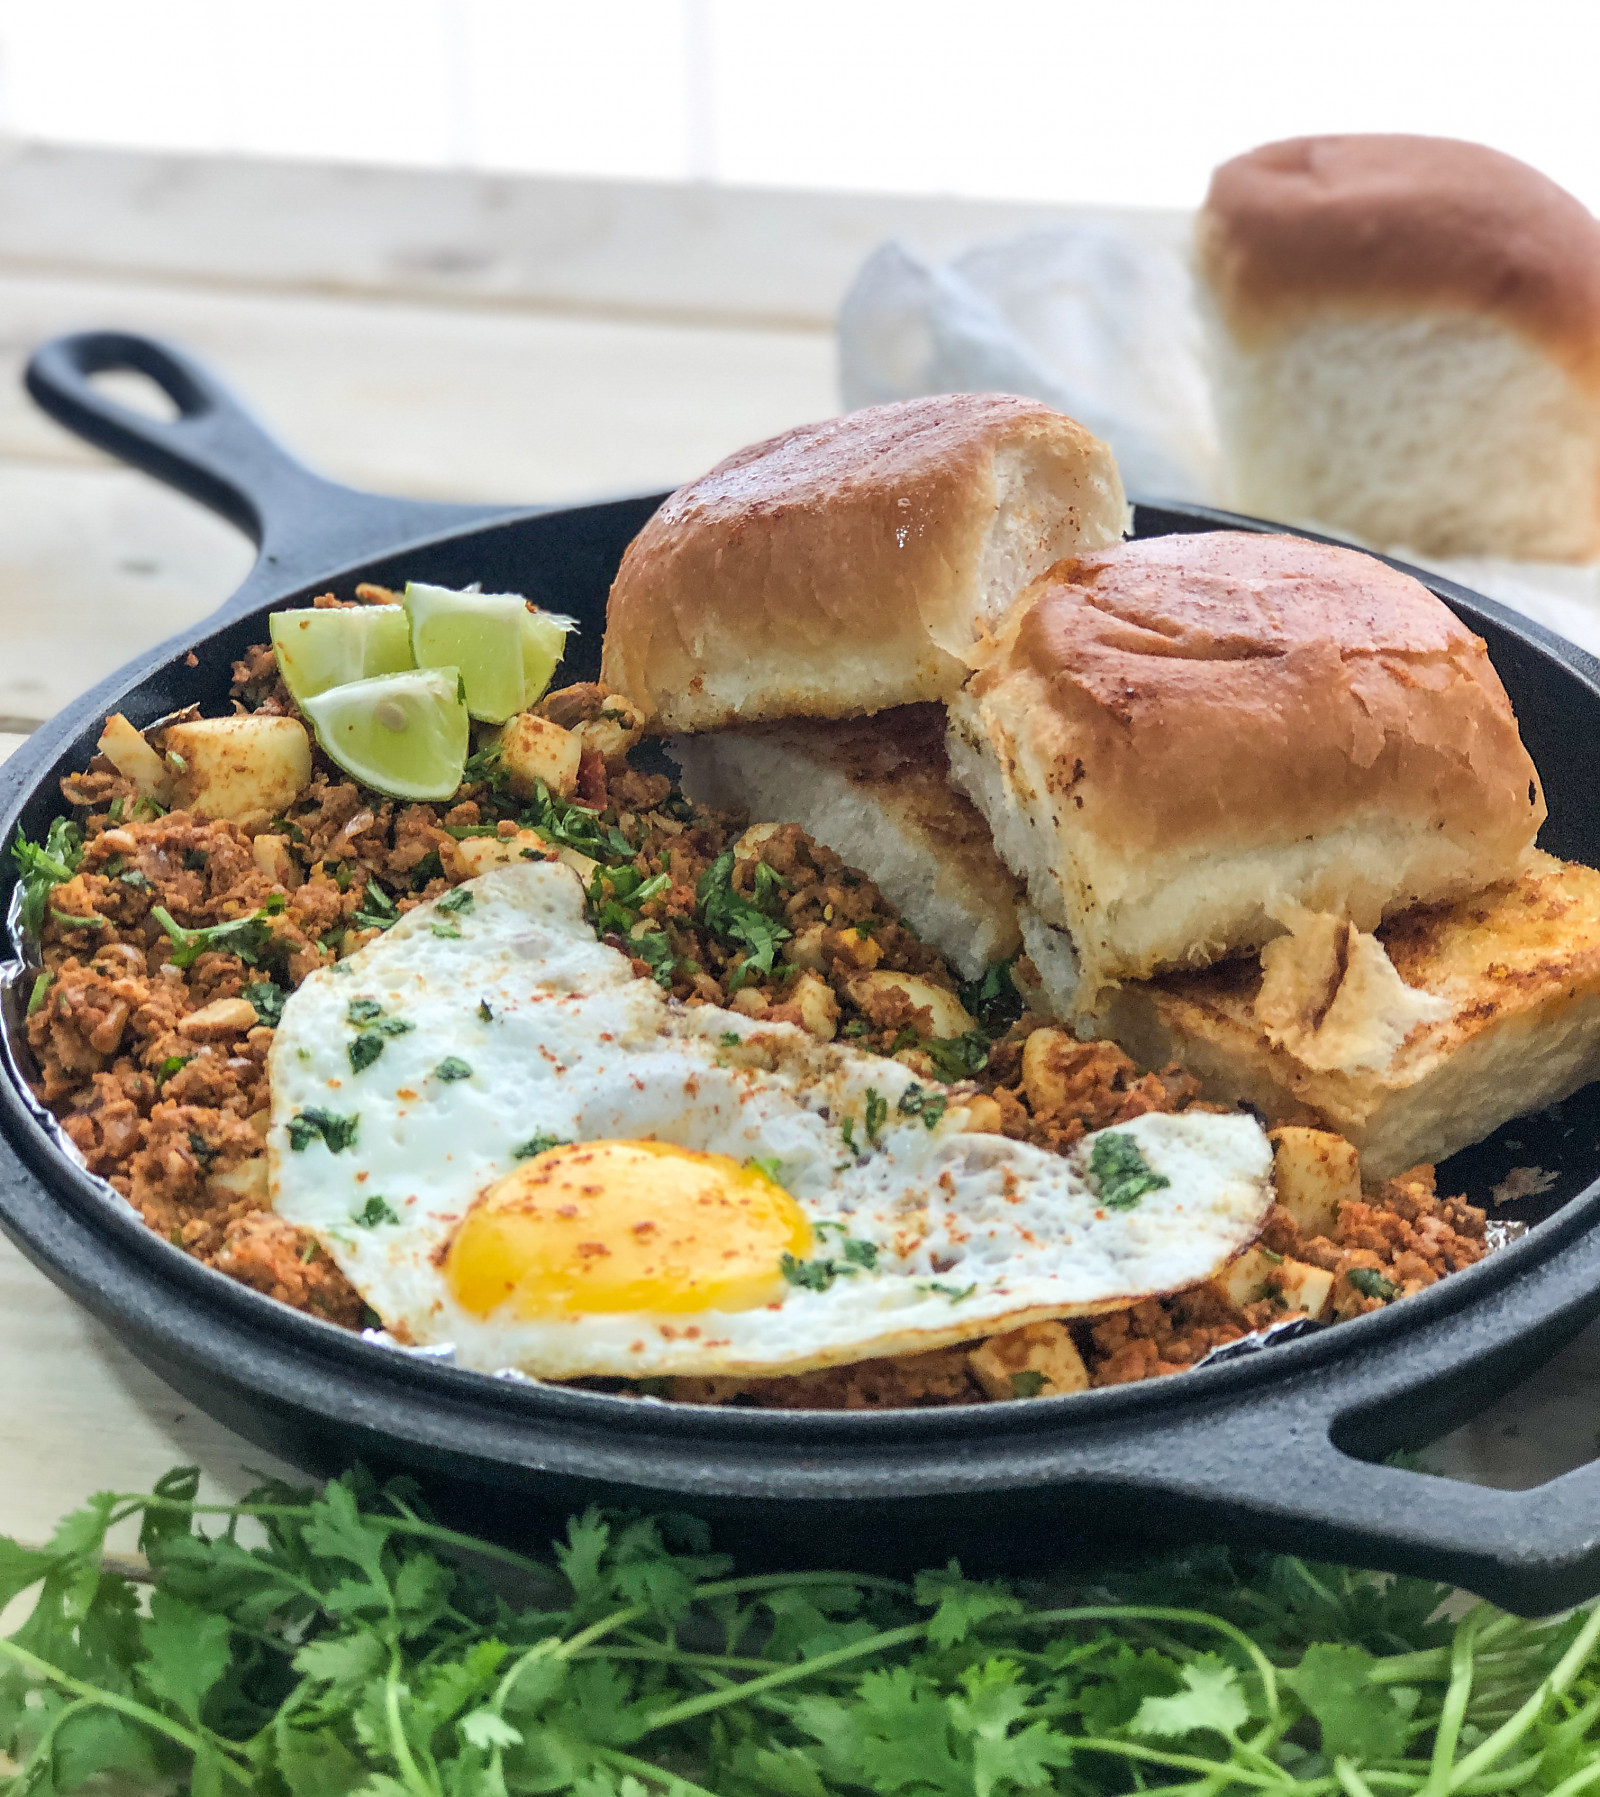 Delicious Breakfast Anda Ghotala Recipe With Butter Pav